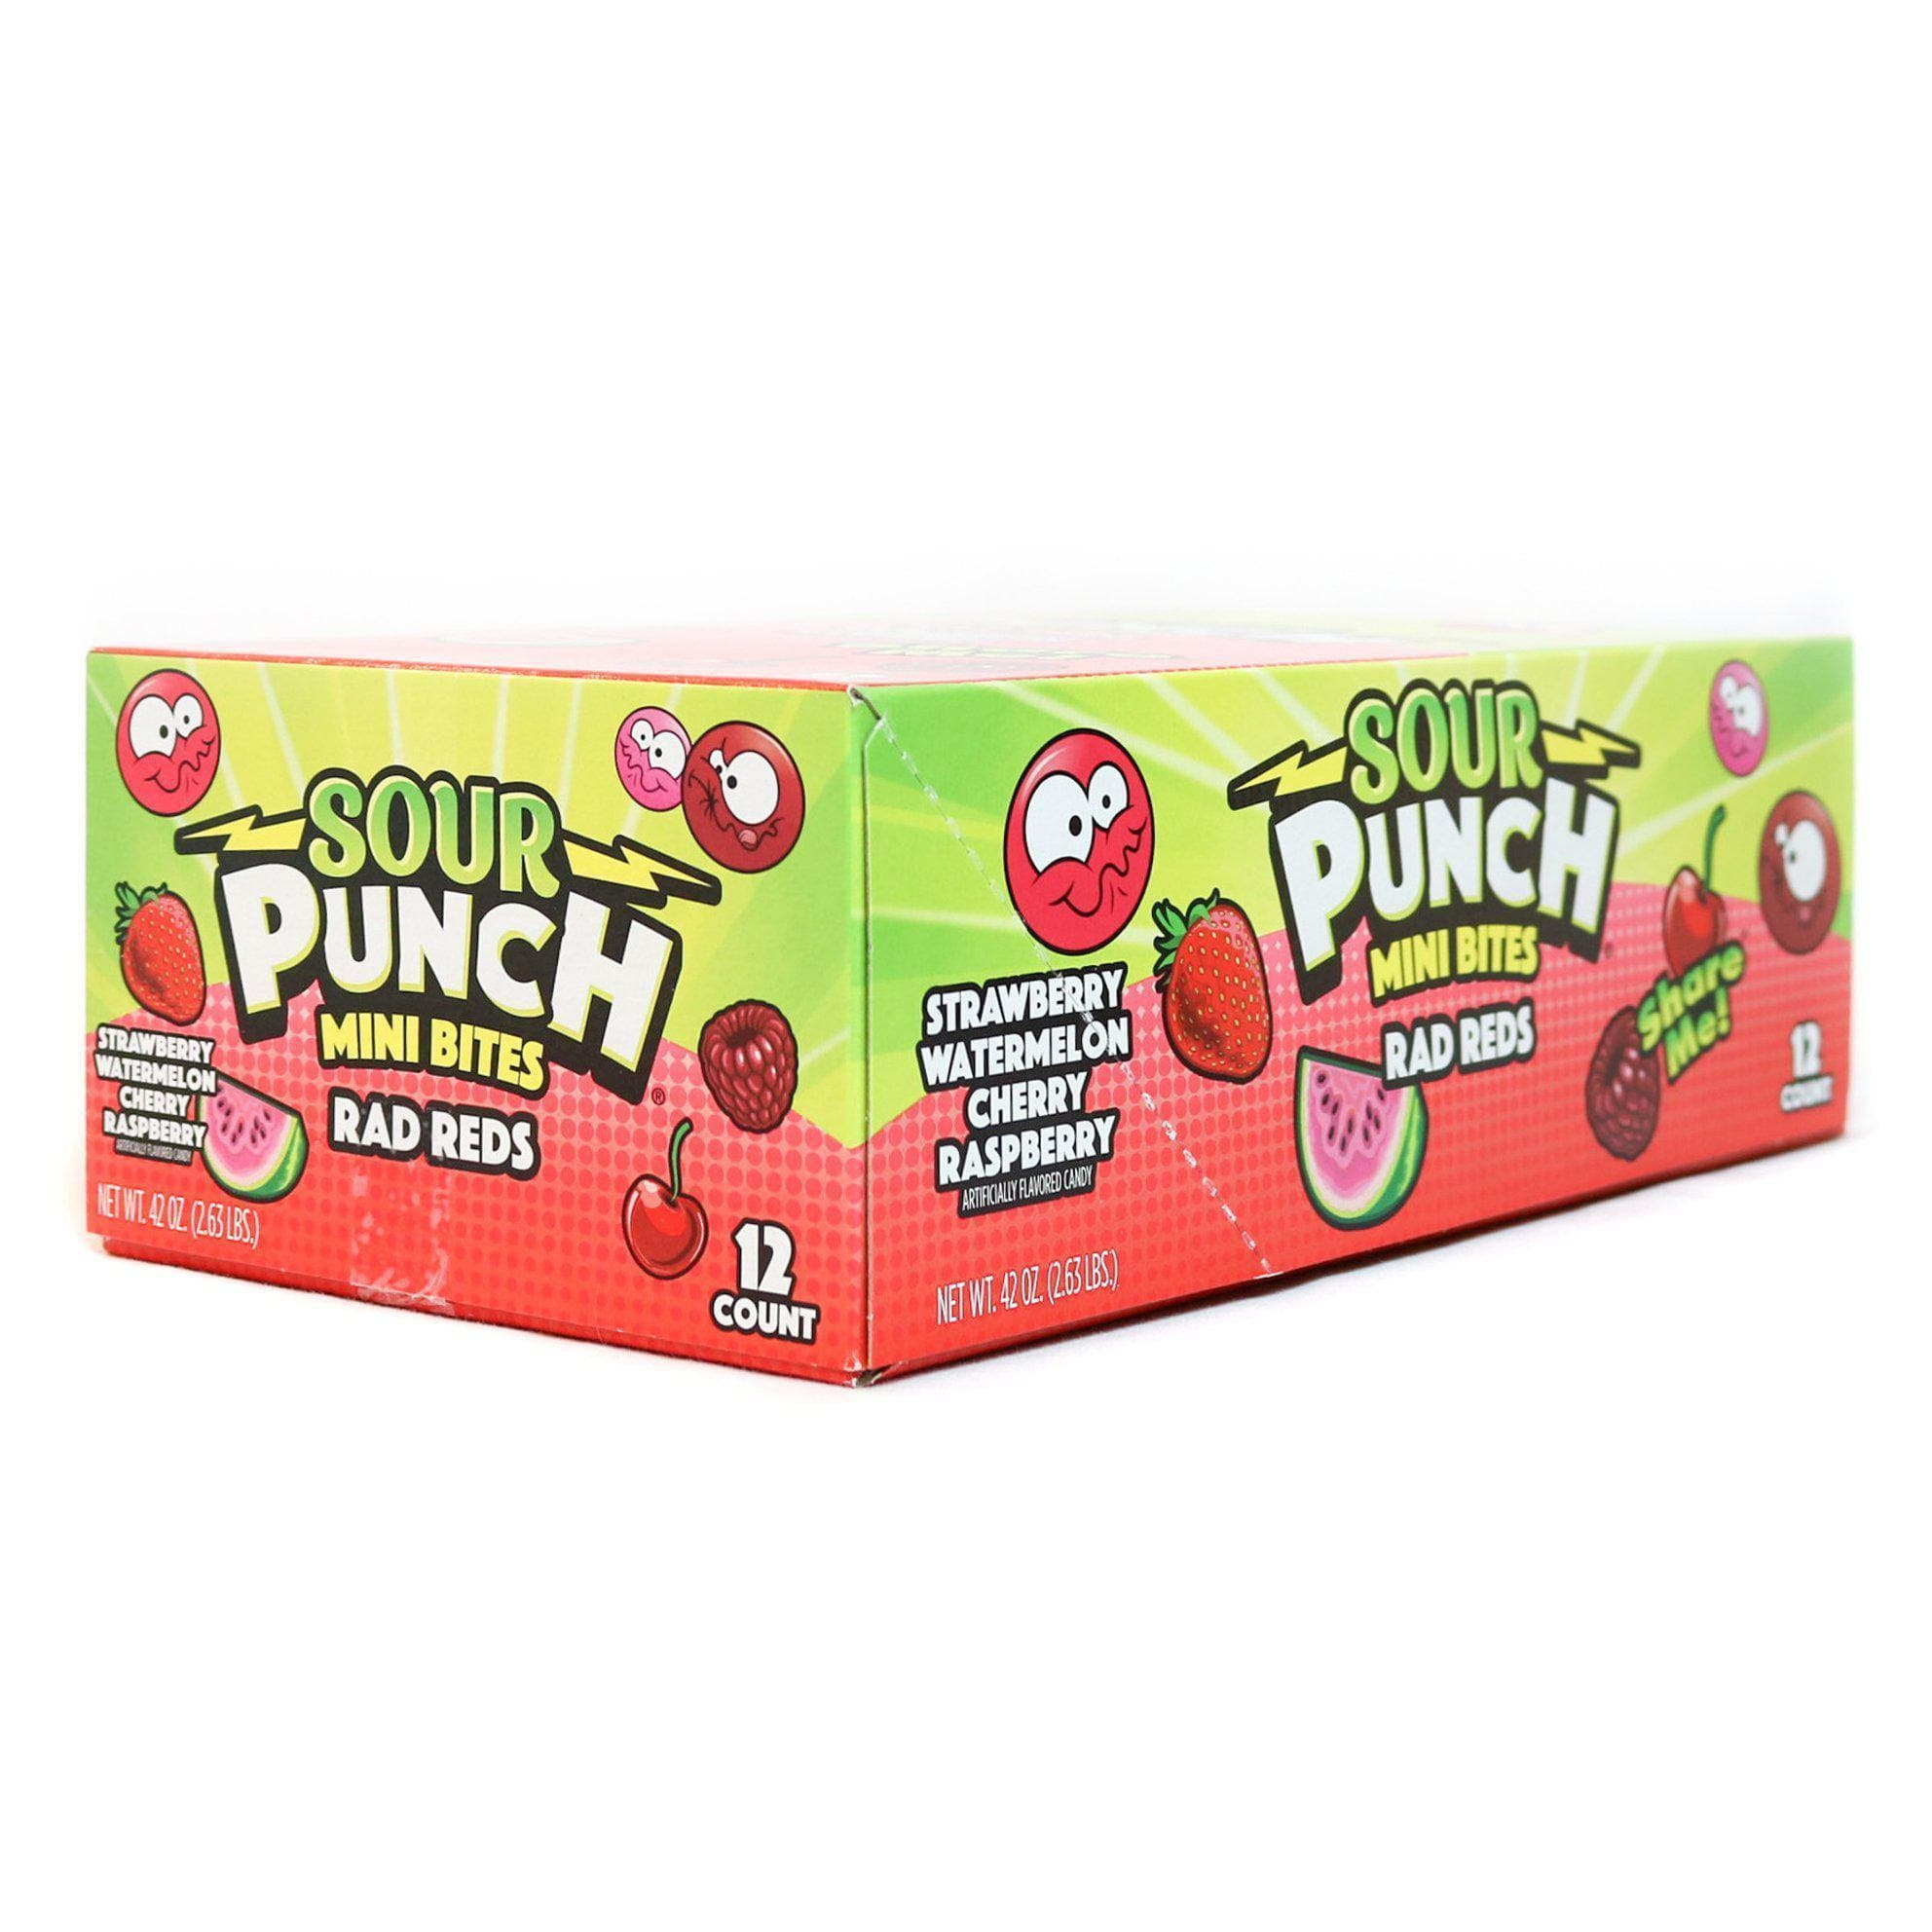 SOUR PUNCH Share Me! Rad Reds 3.5oz 12 Pack